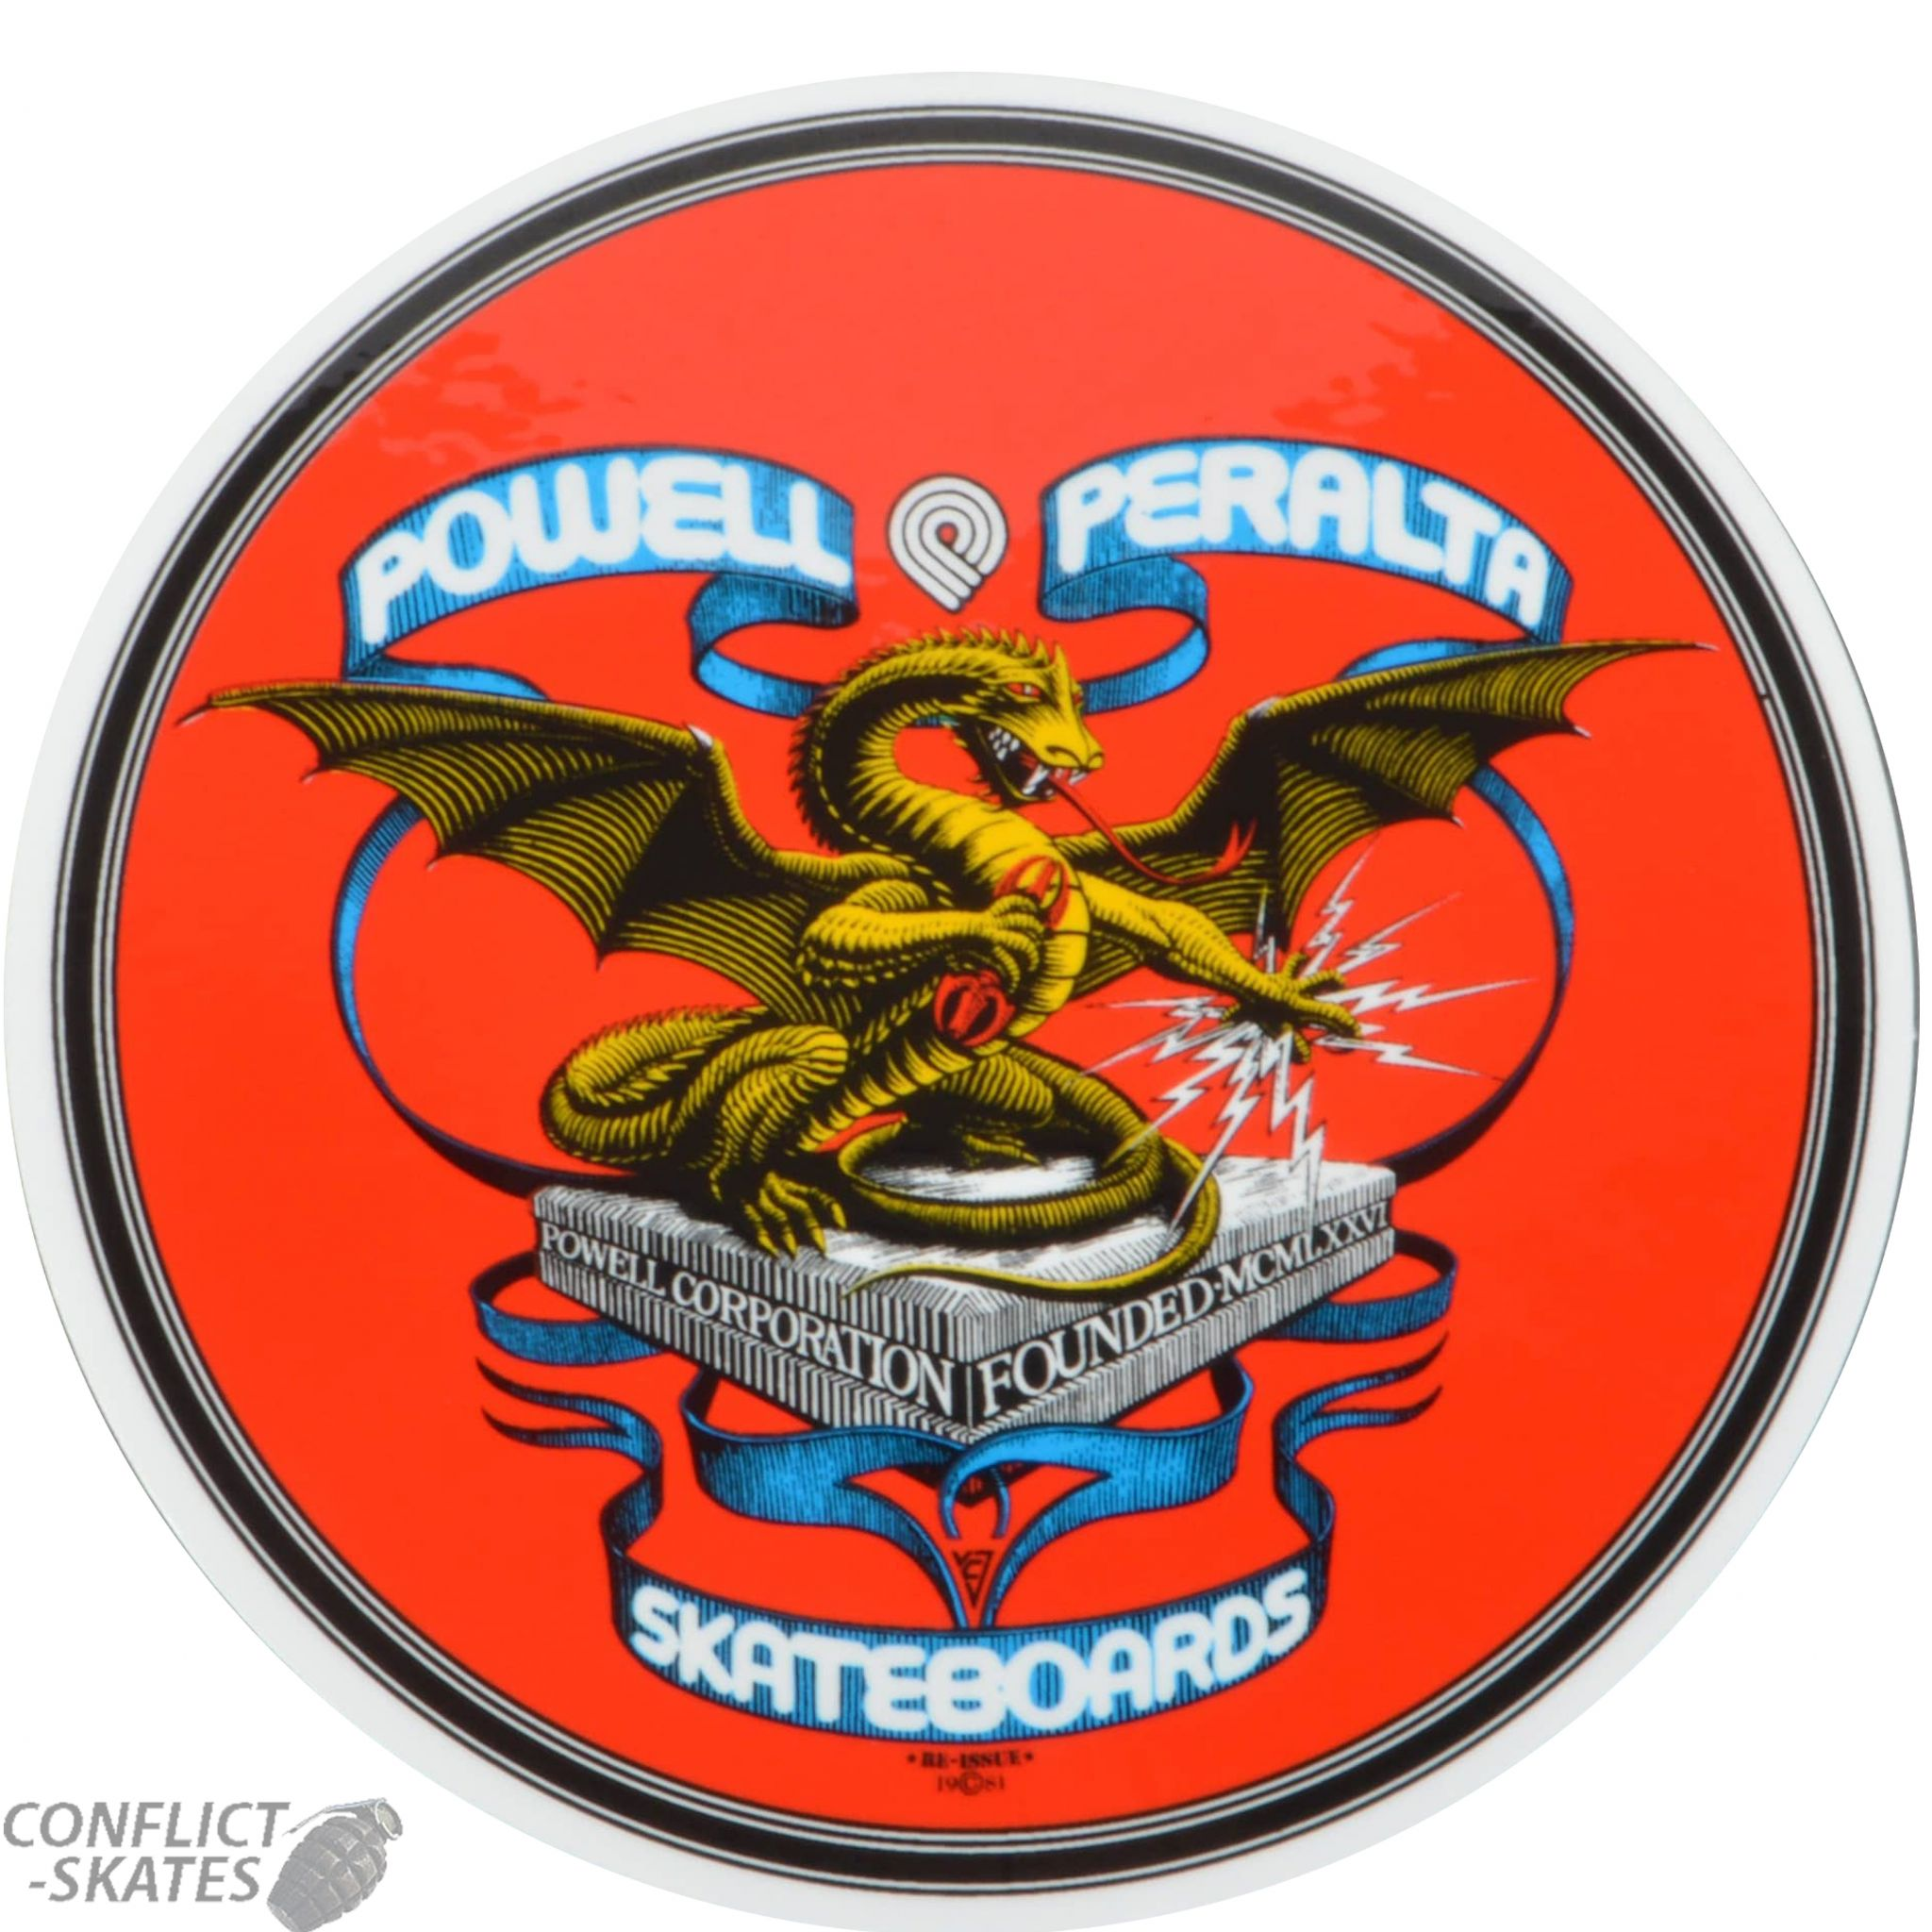 Powell Peralta Banner Dragon Skateboard Sticker 10cm X